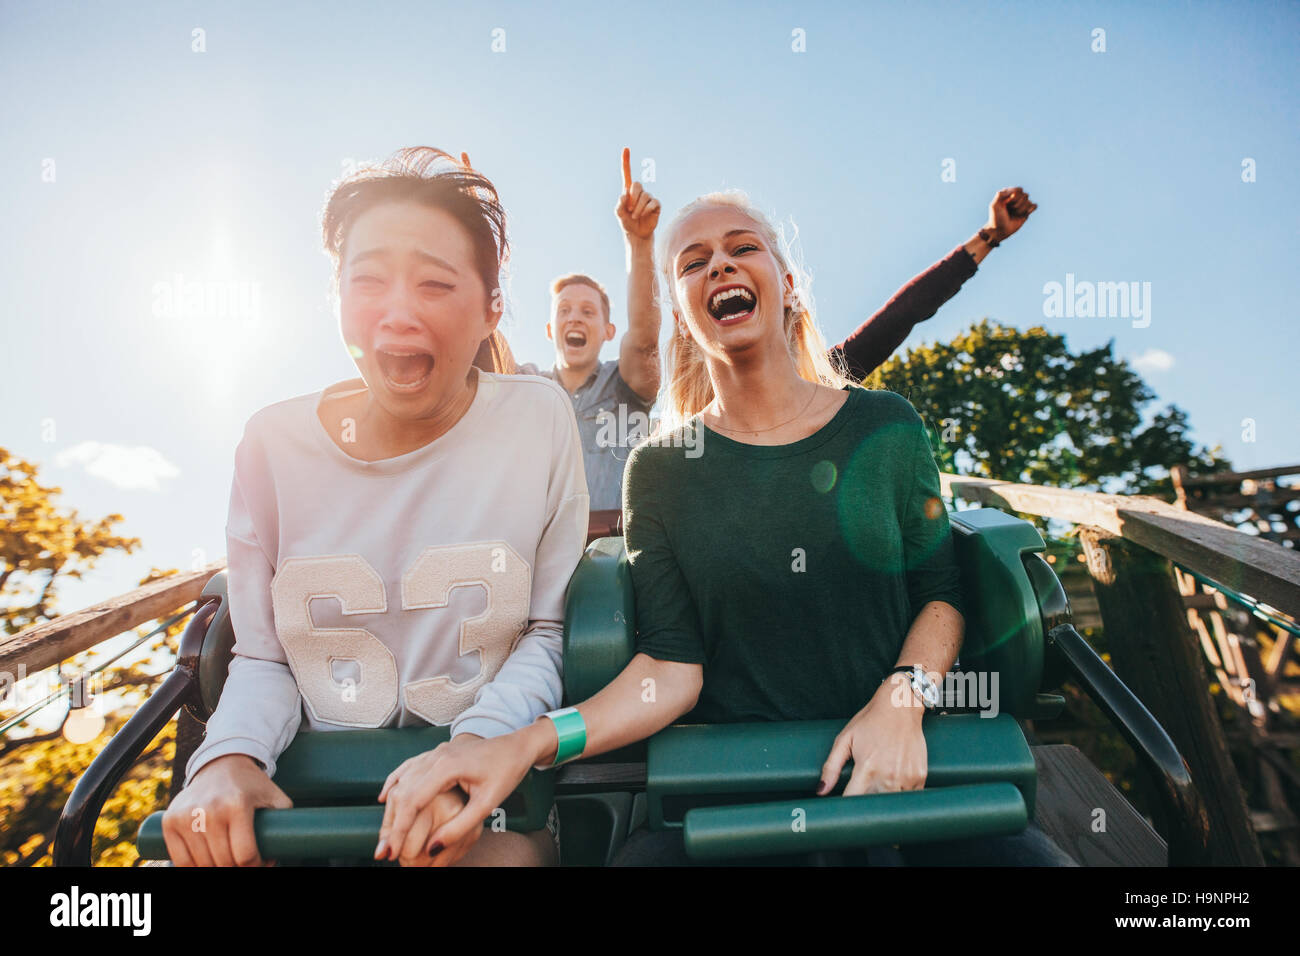 Jeunes amis enthousiaste équitation roller coaster ride at amusement park. Les jeunes s'amuser au parc Photo Stock